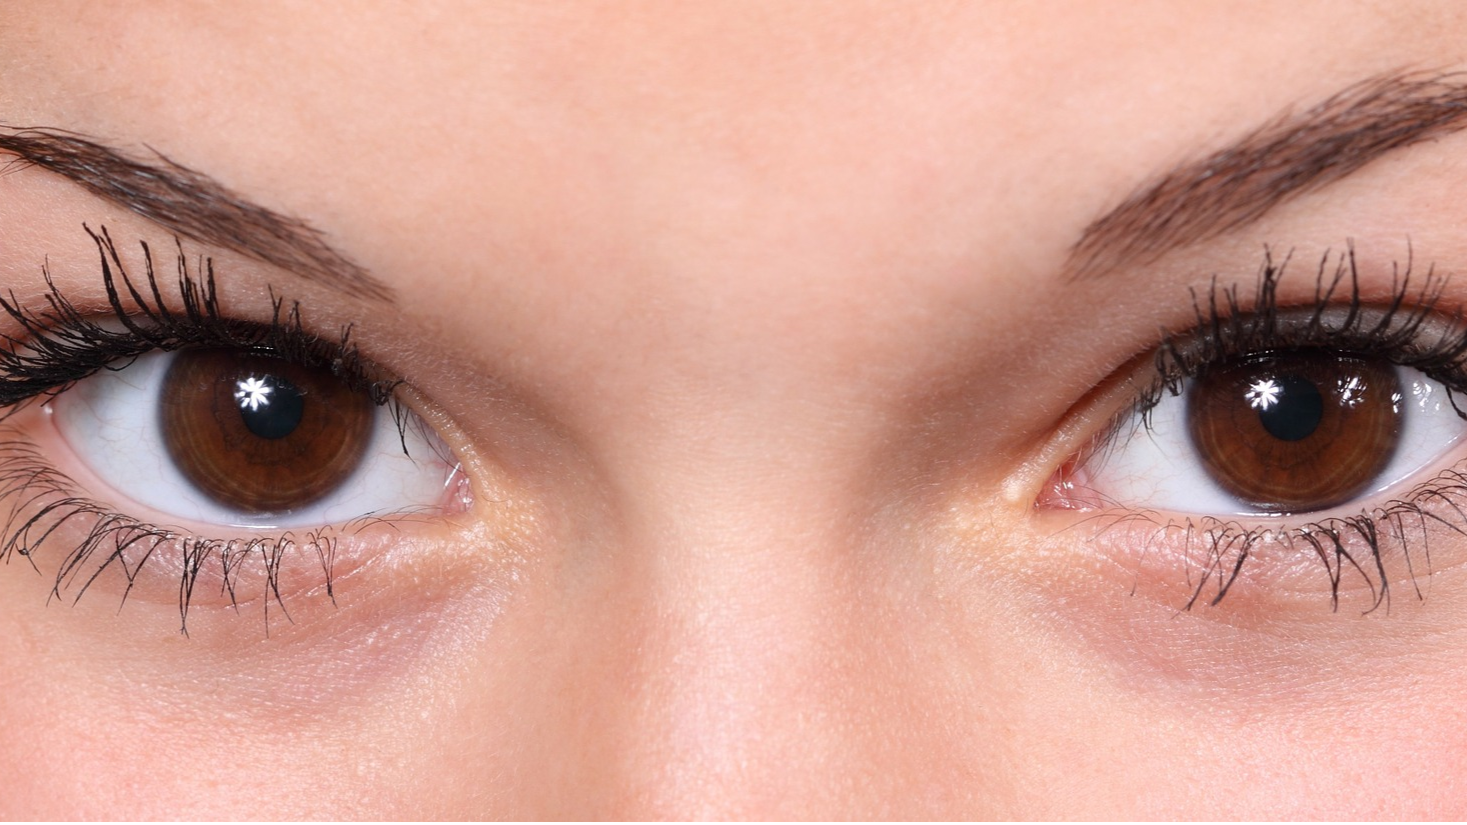 Woman Calls Police To Complain About The Beautician That Plucked Her Eyebrows